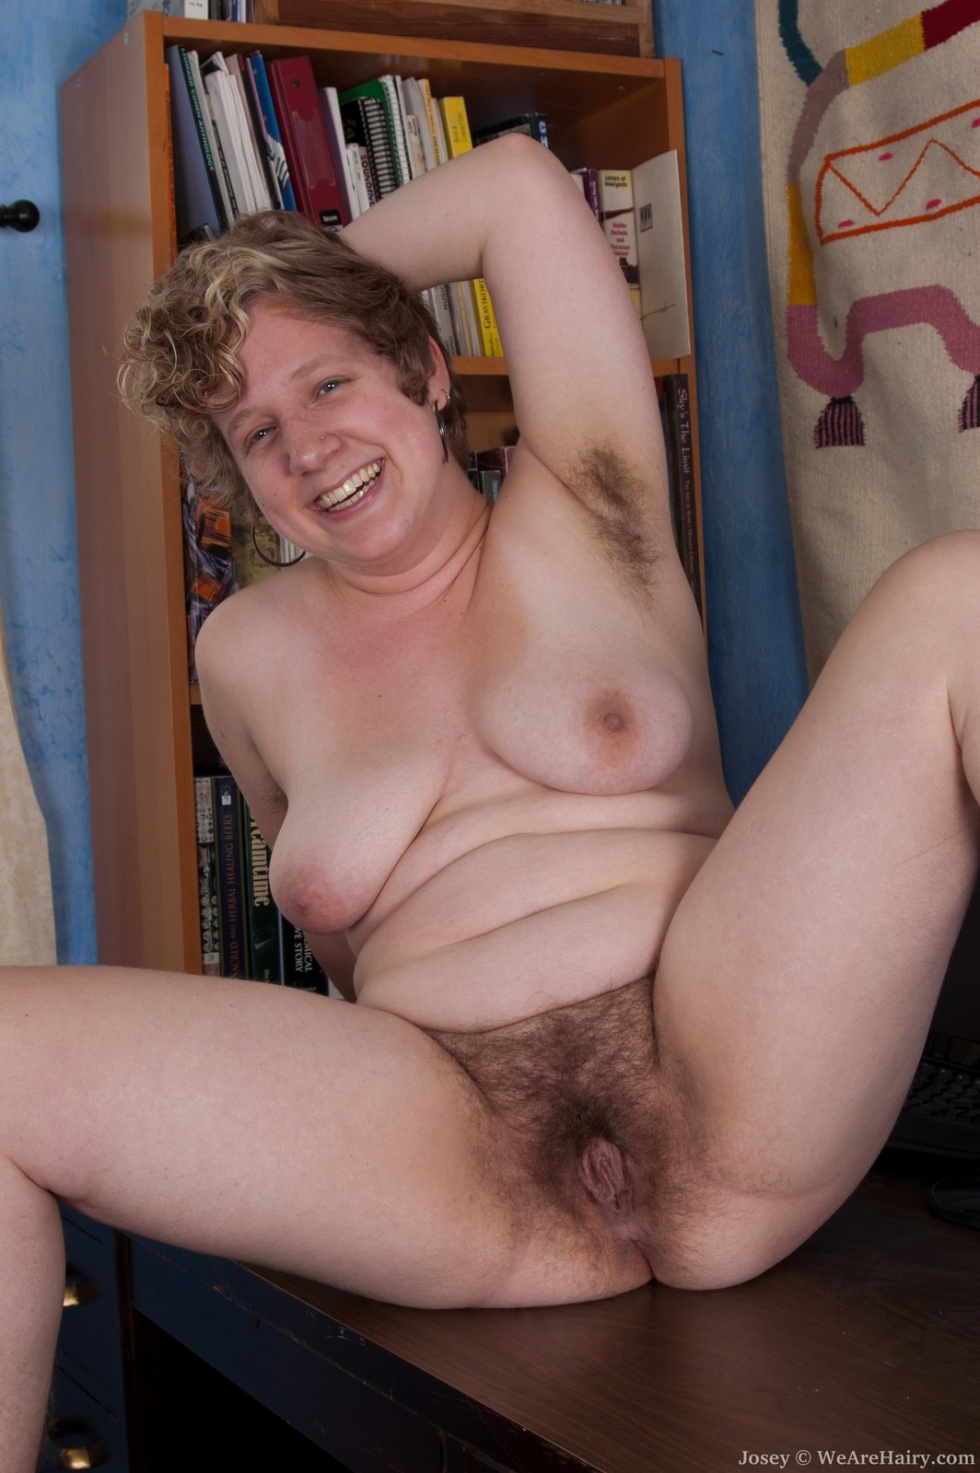 Naked Women With Hairy Pits And Legs